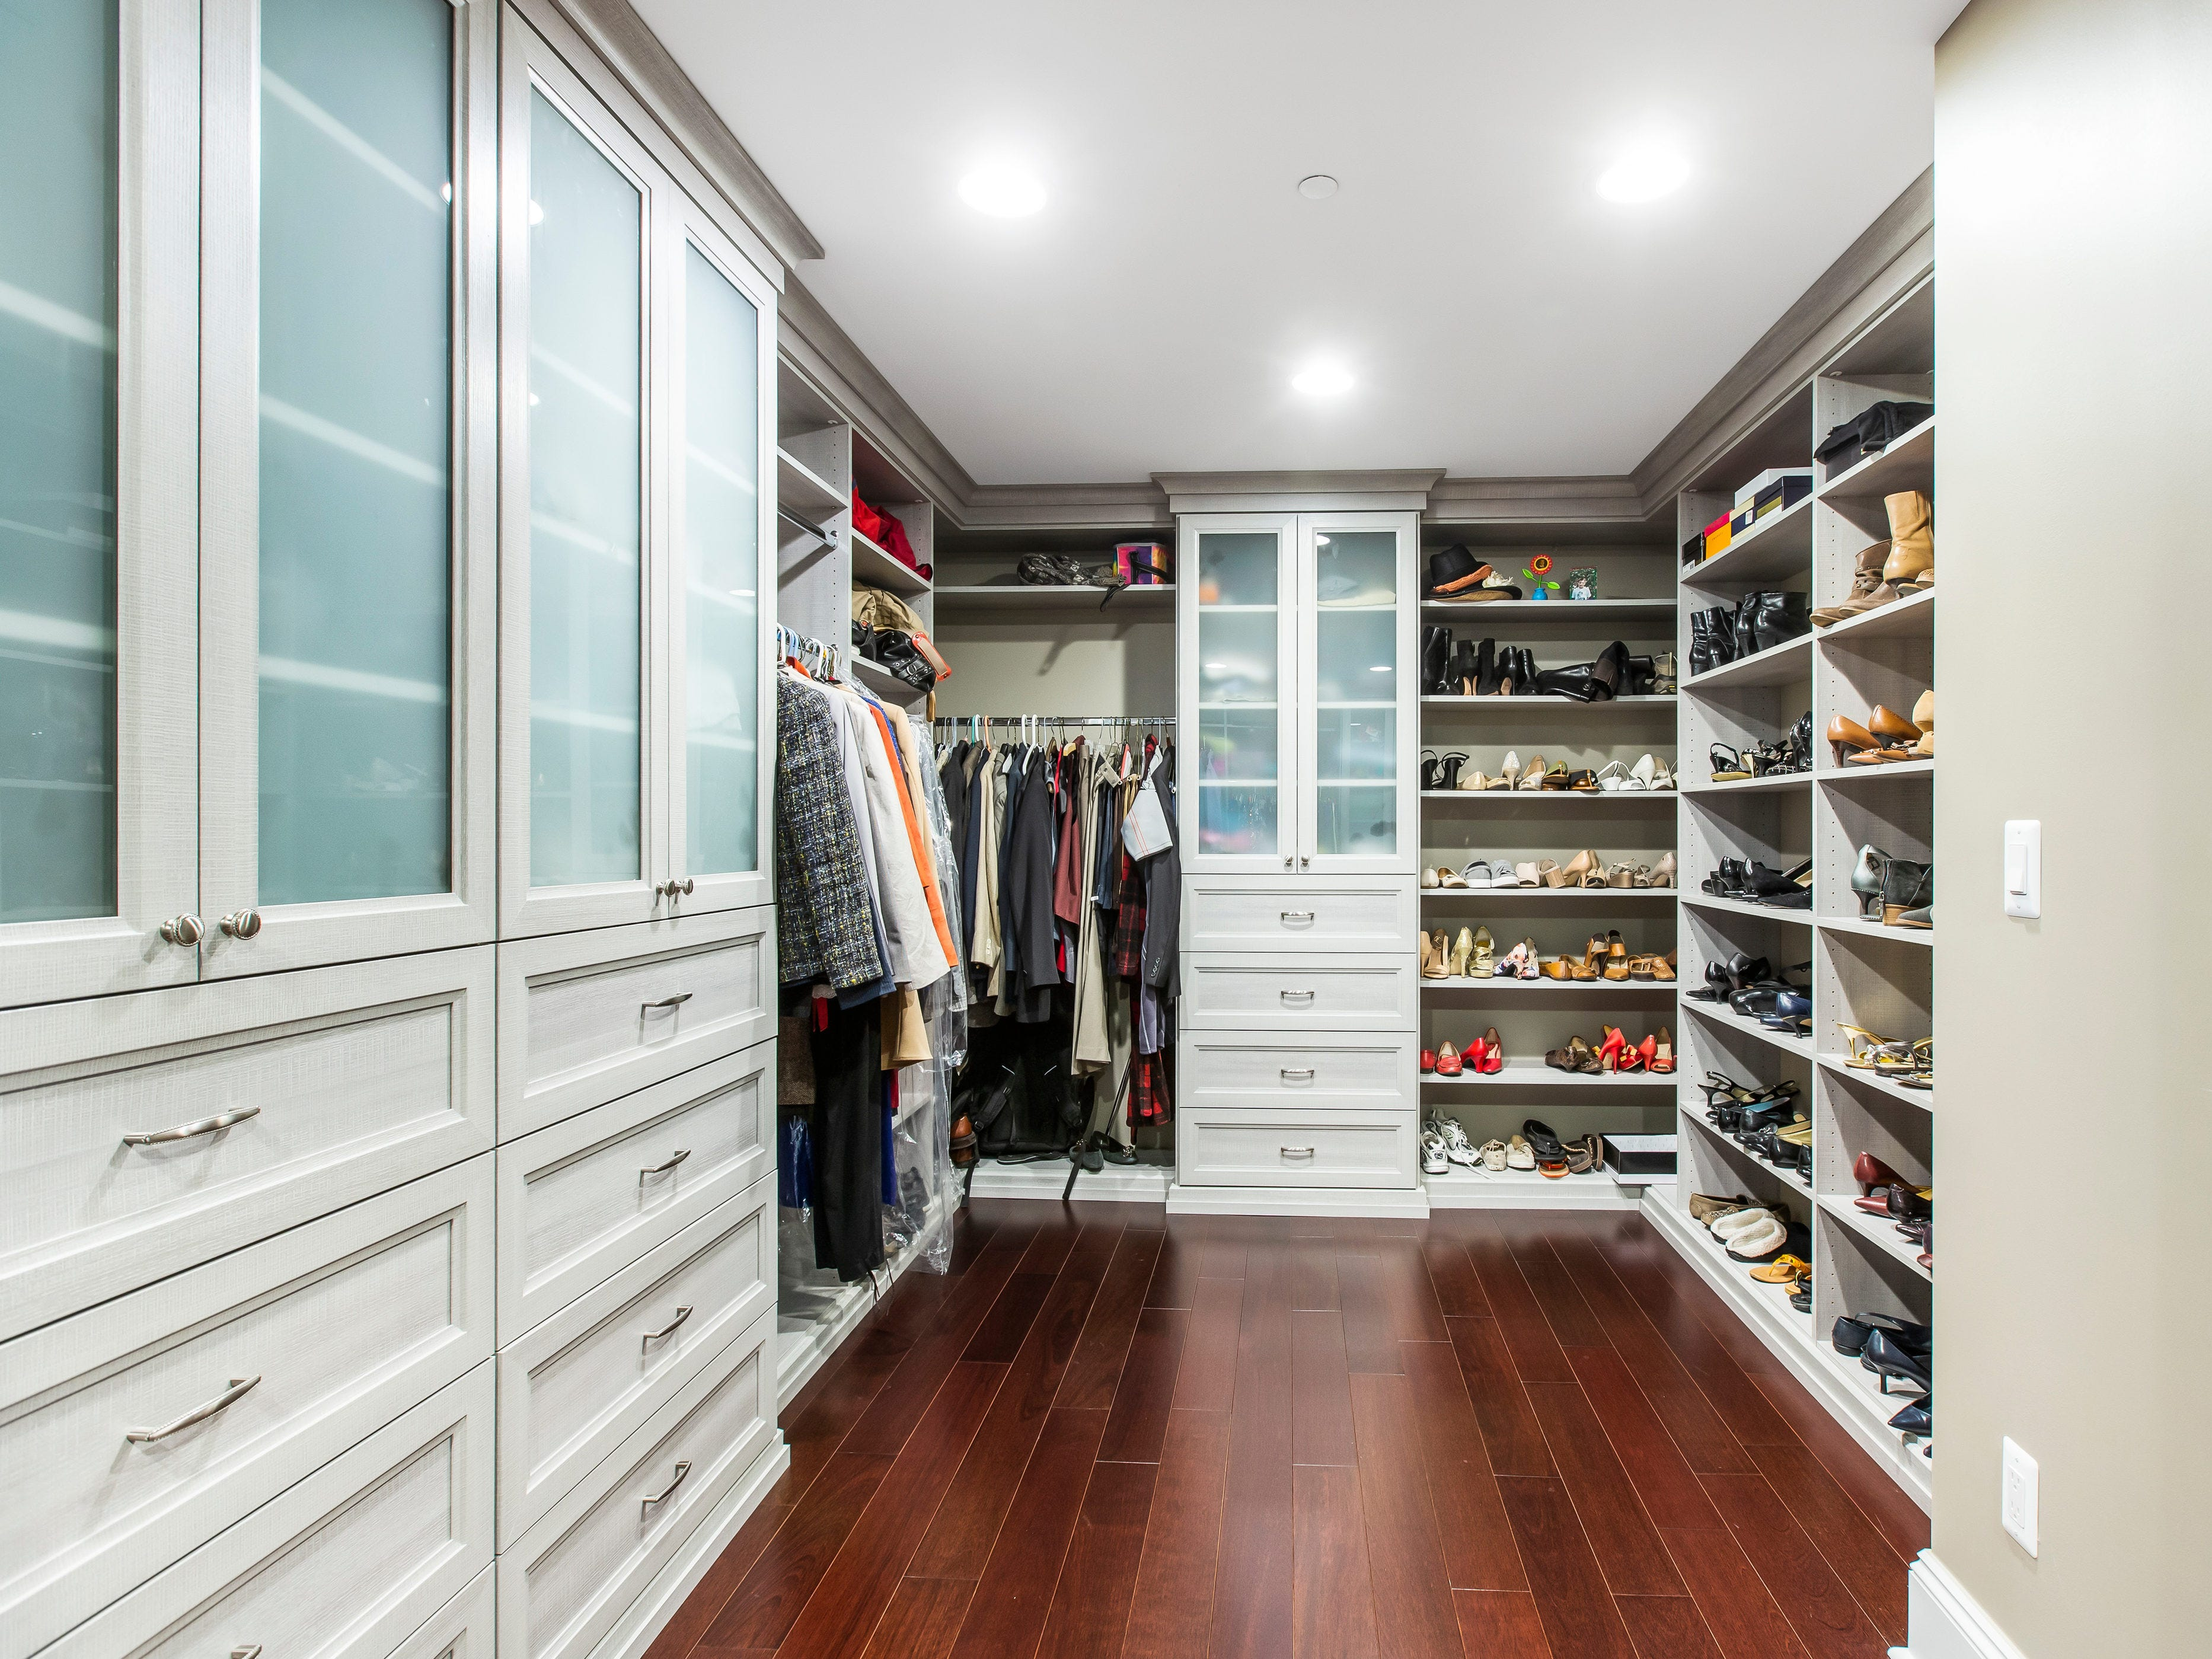 This is a huge, walk-in closet.